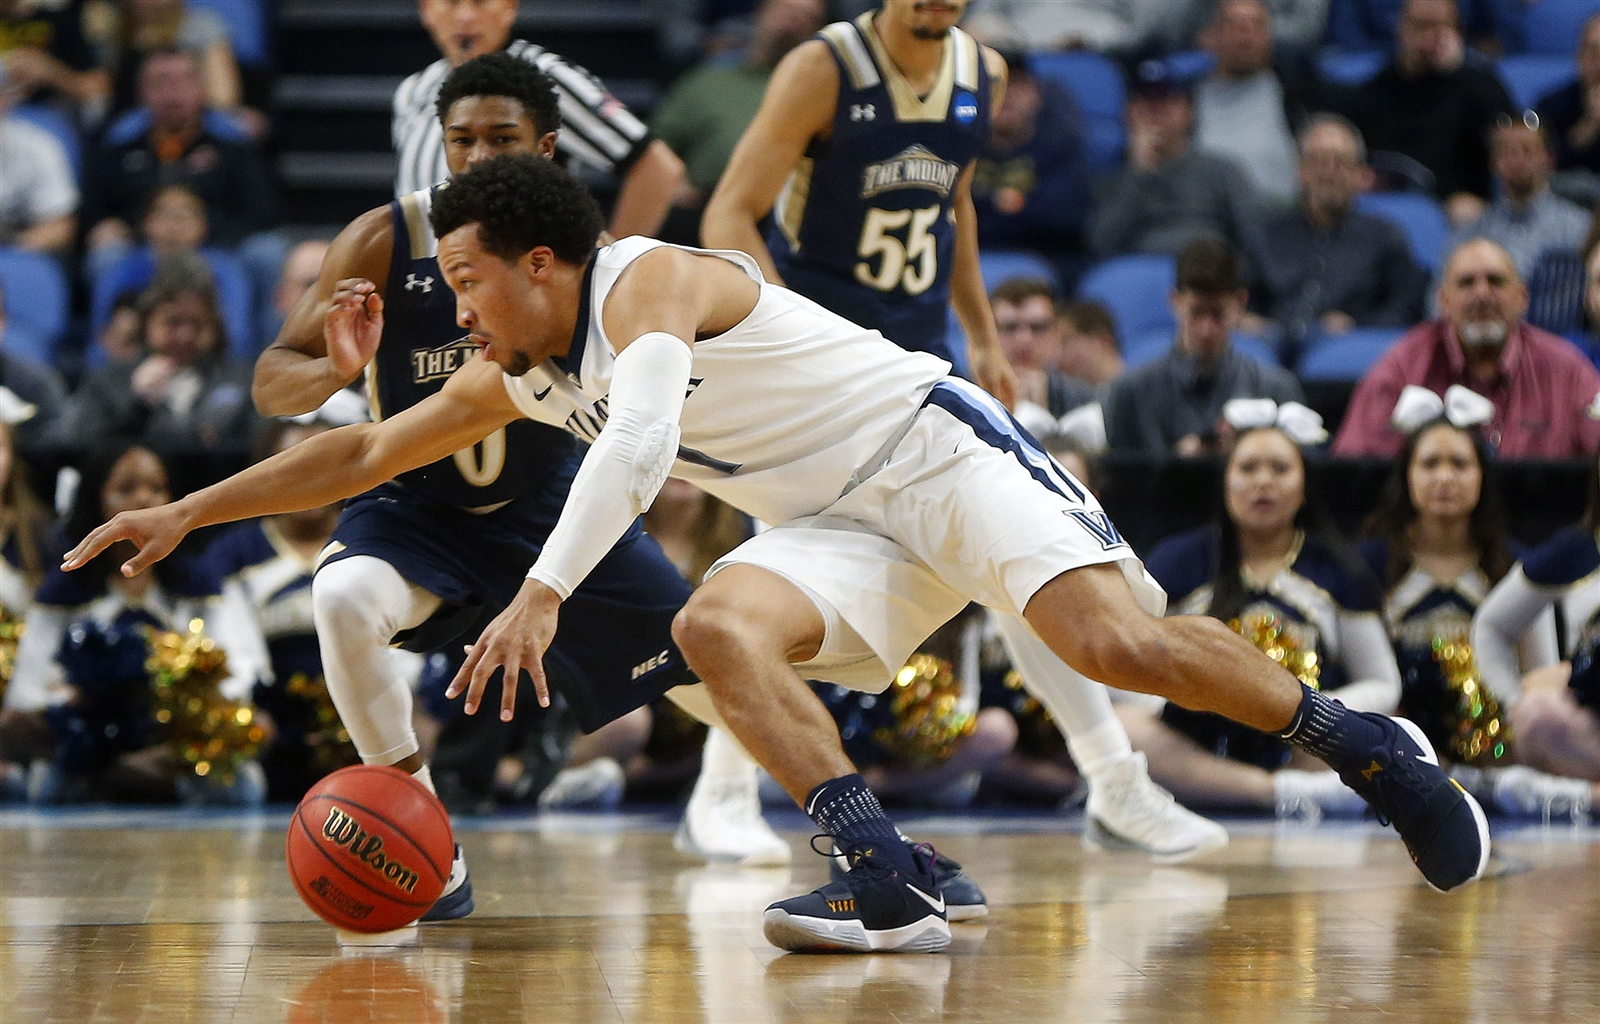 Villanova's Jalen Brunson tries to get past Mount St. Mary's Junior Robinson in the first half.